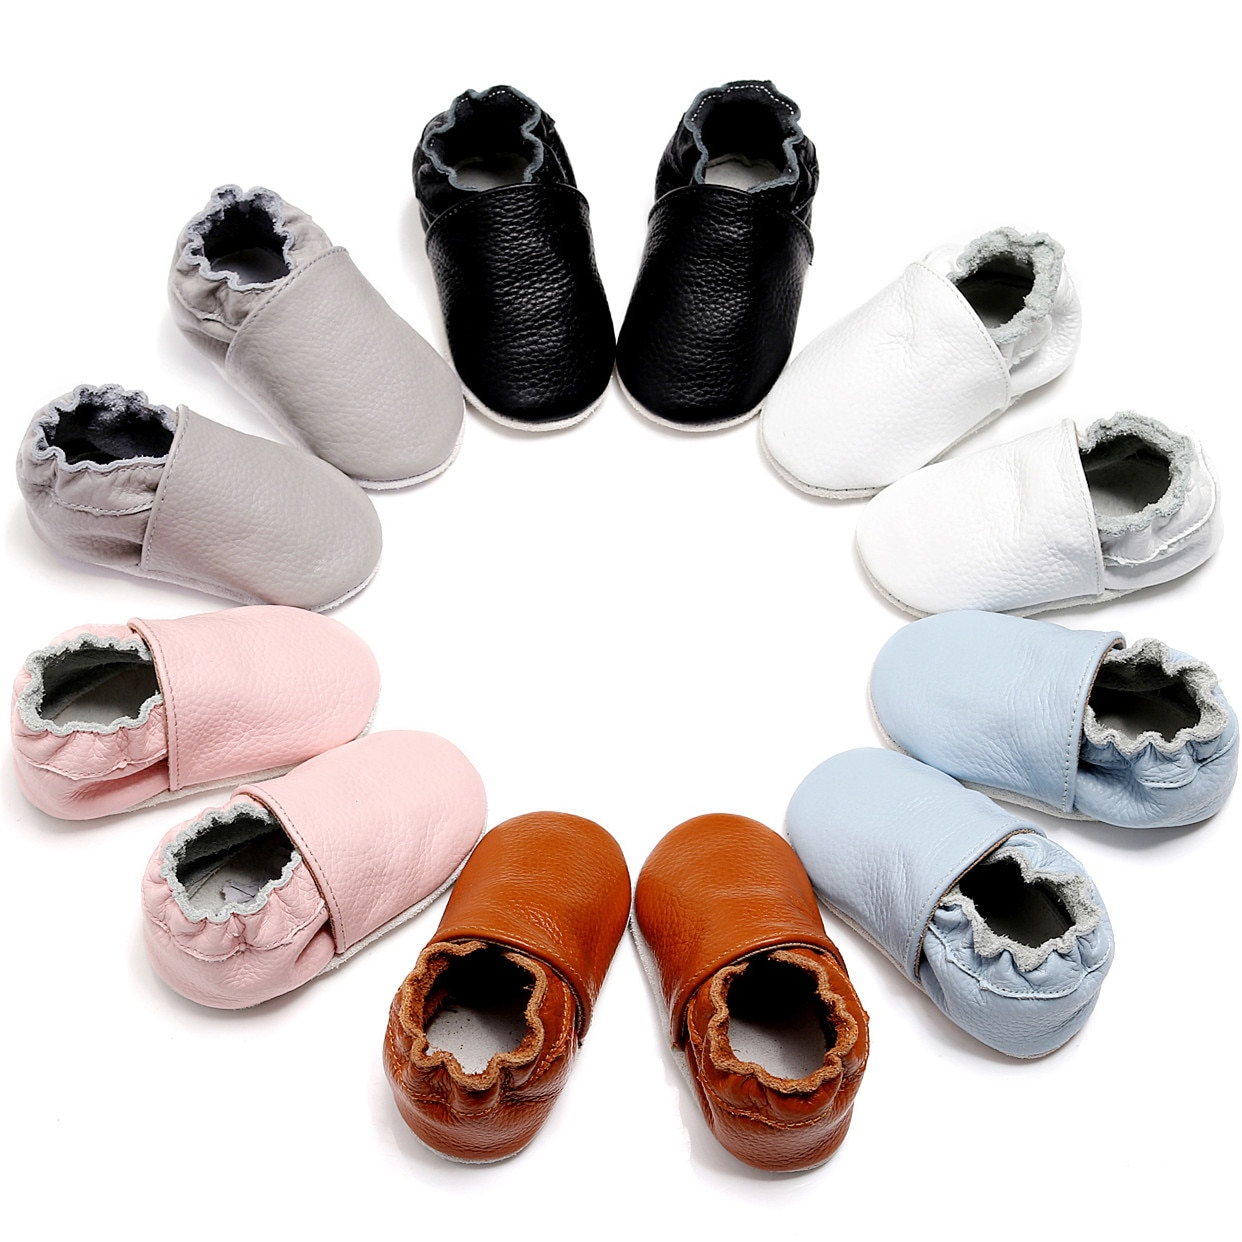 Baby Shoes Genuine Leather Soft Sole Newborn Booties Baby Boys Infant Toddler Shoes Moccasins Slippers First Walkers Sneakers